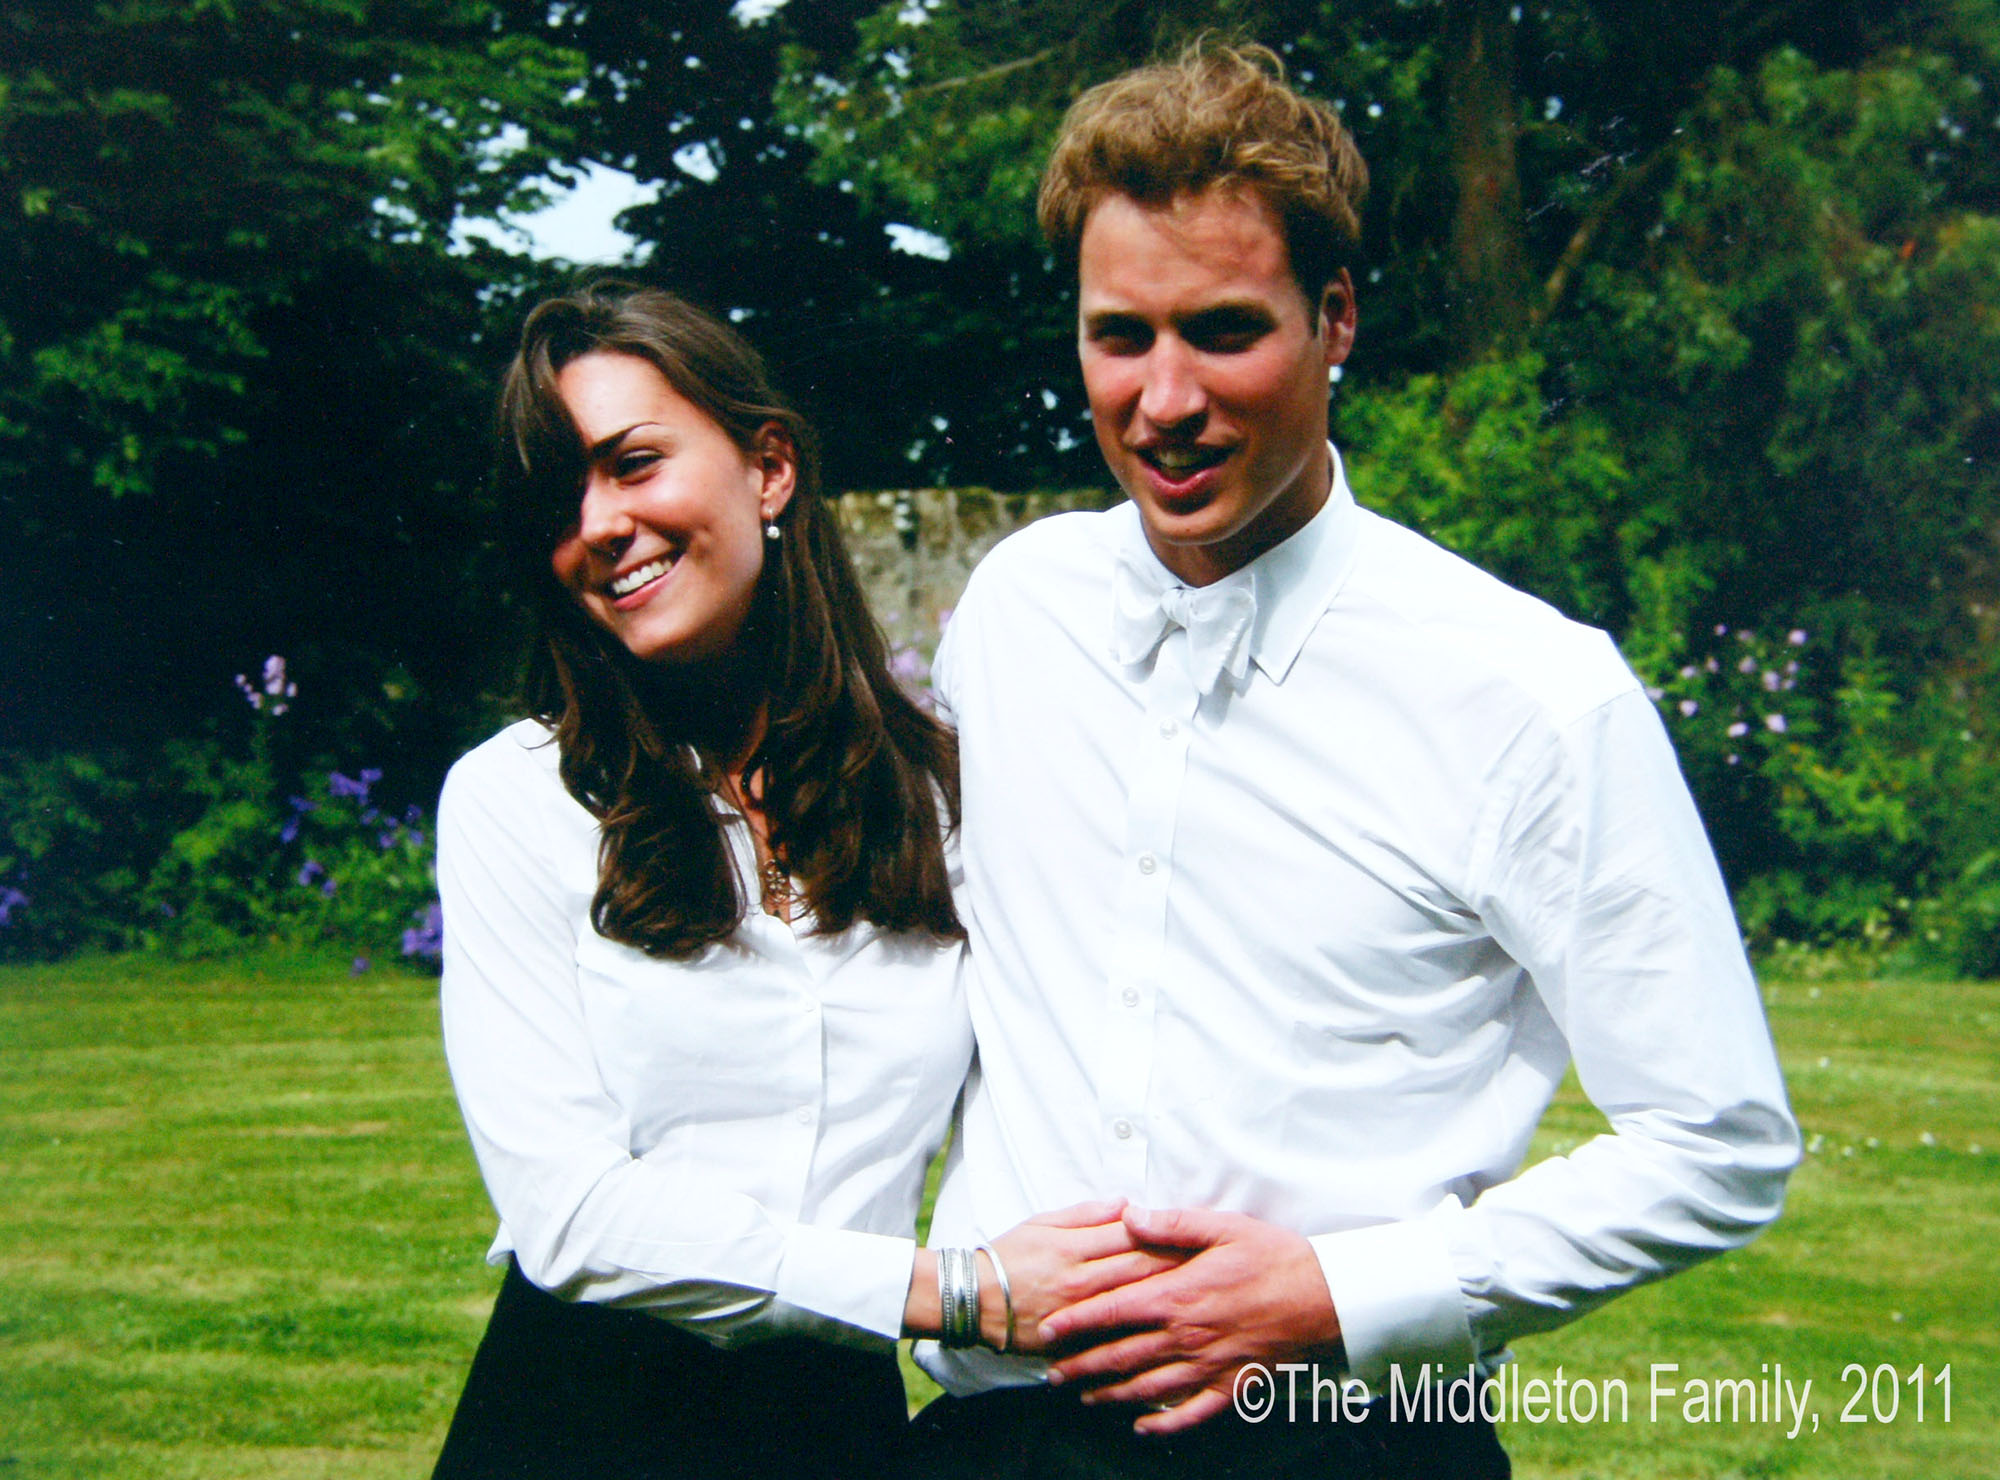 Middleton Family/Clarence House via Getty